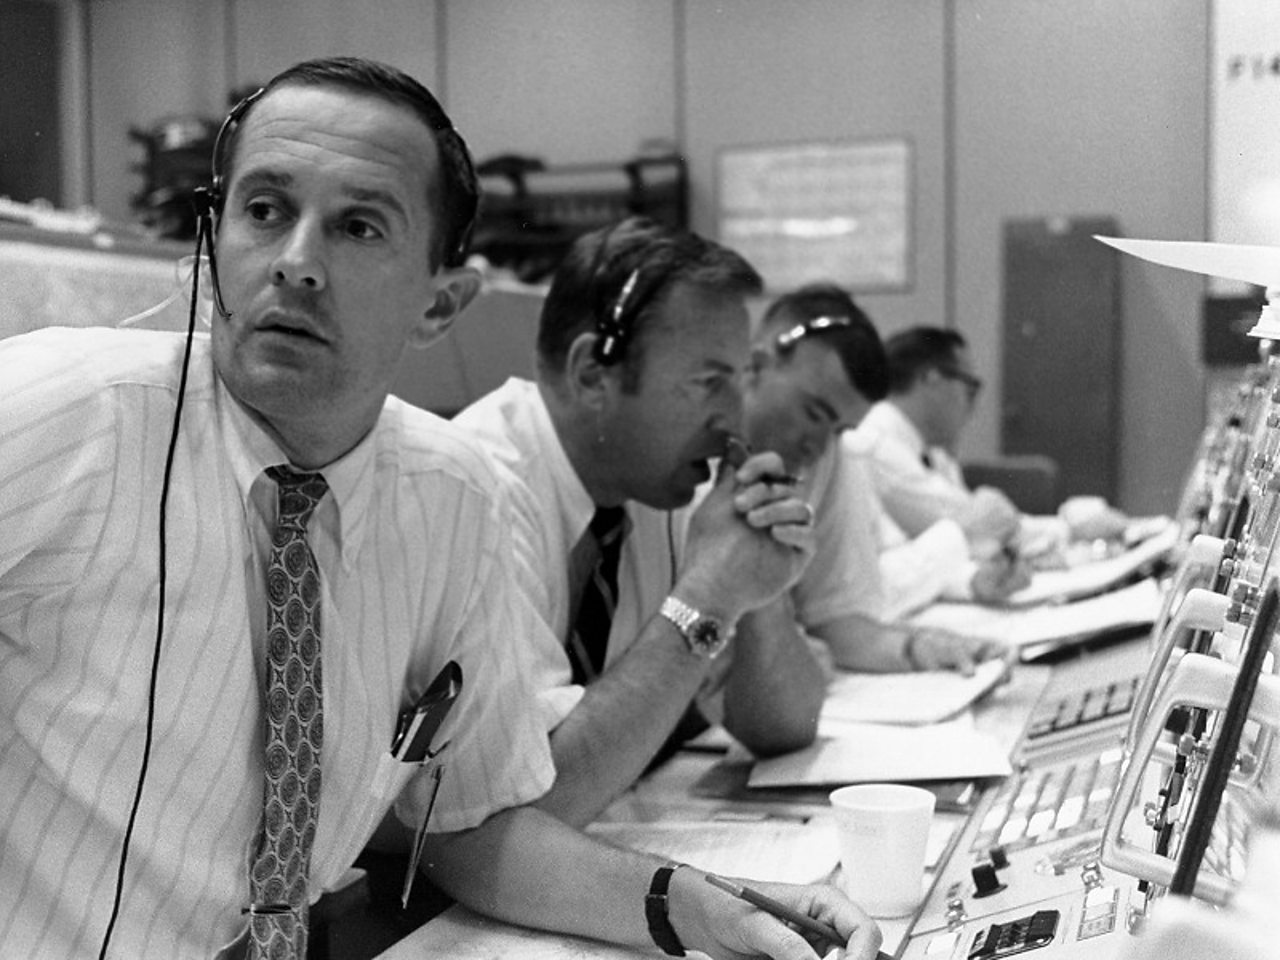 Men at mission control wearing telephone headsets. Left to Right: Charlie Duke; Jim Lovell; Fred Haise.